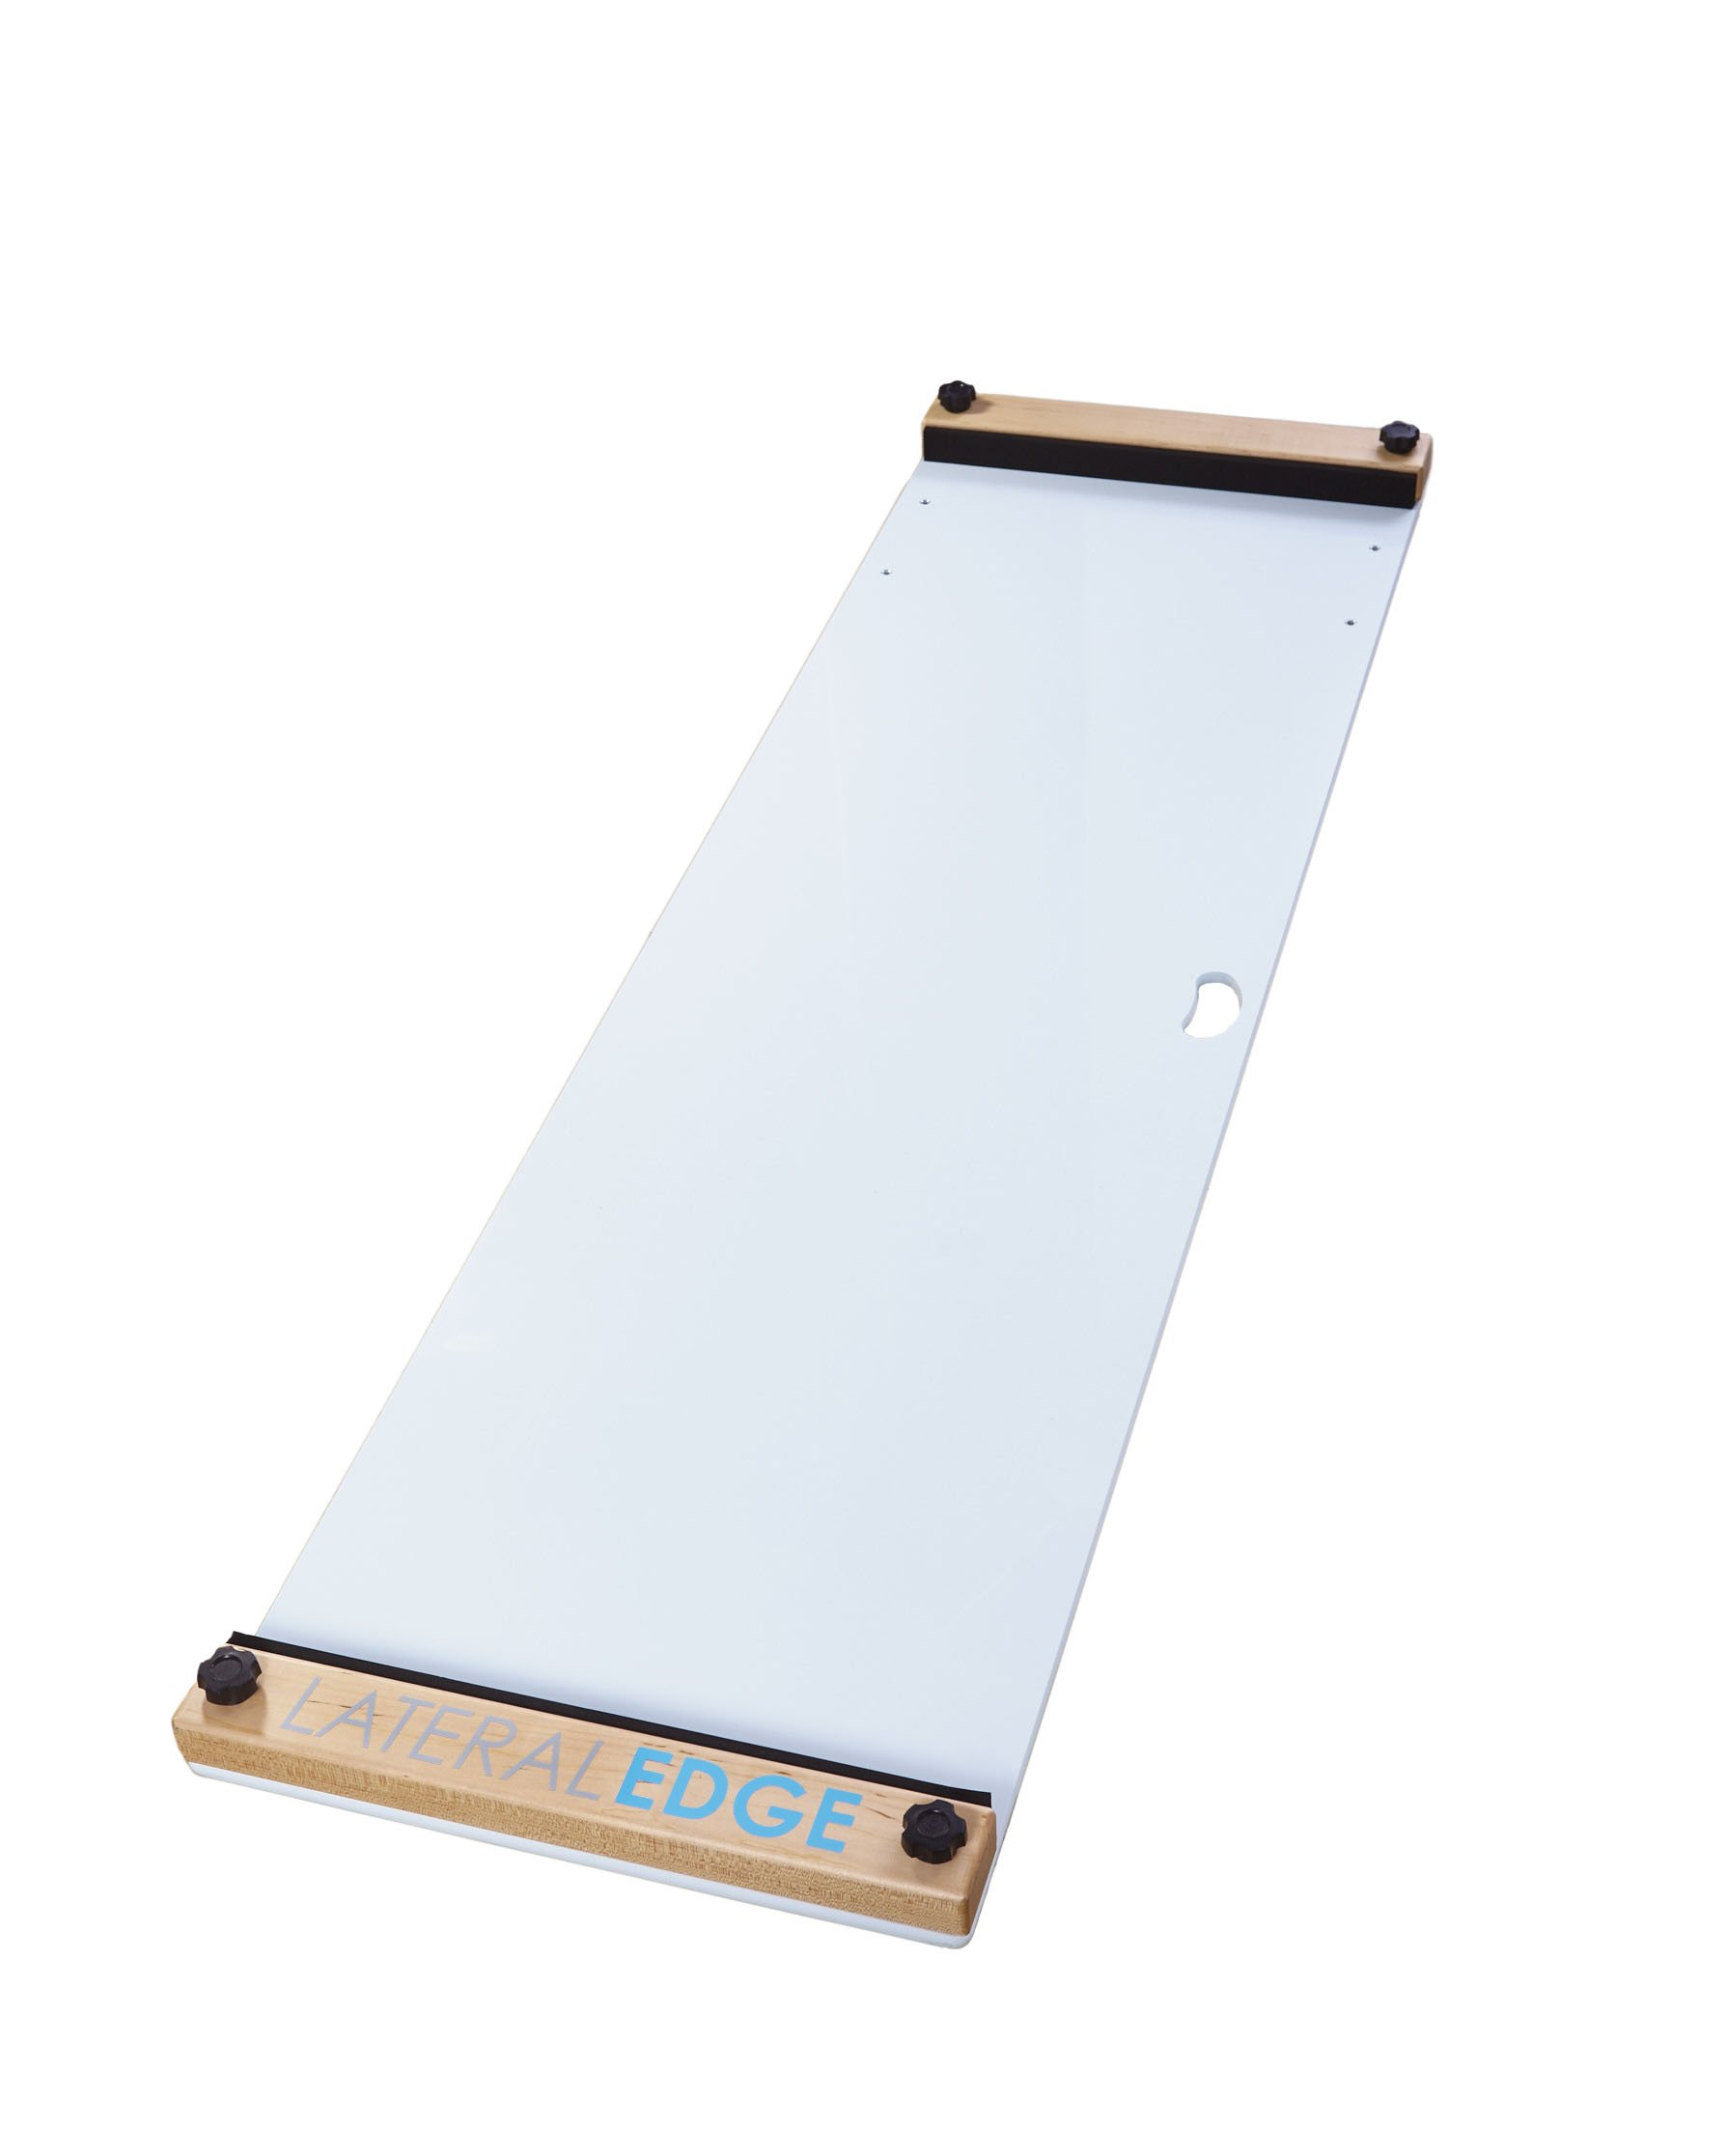 LE Select Slide Board by Lateral Edge